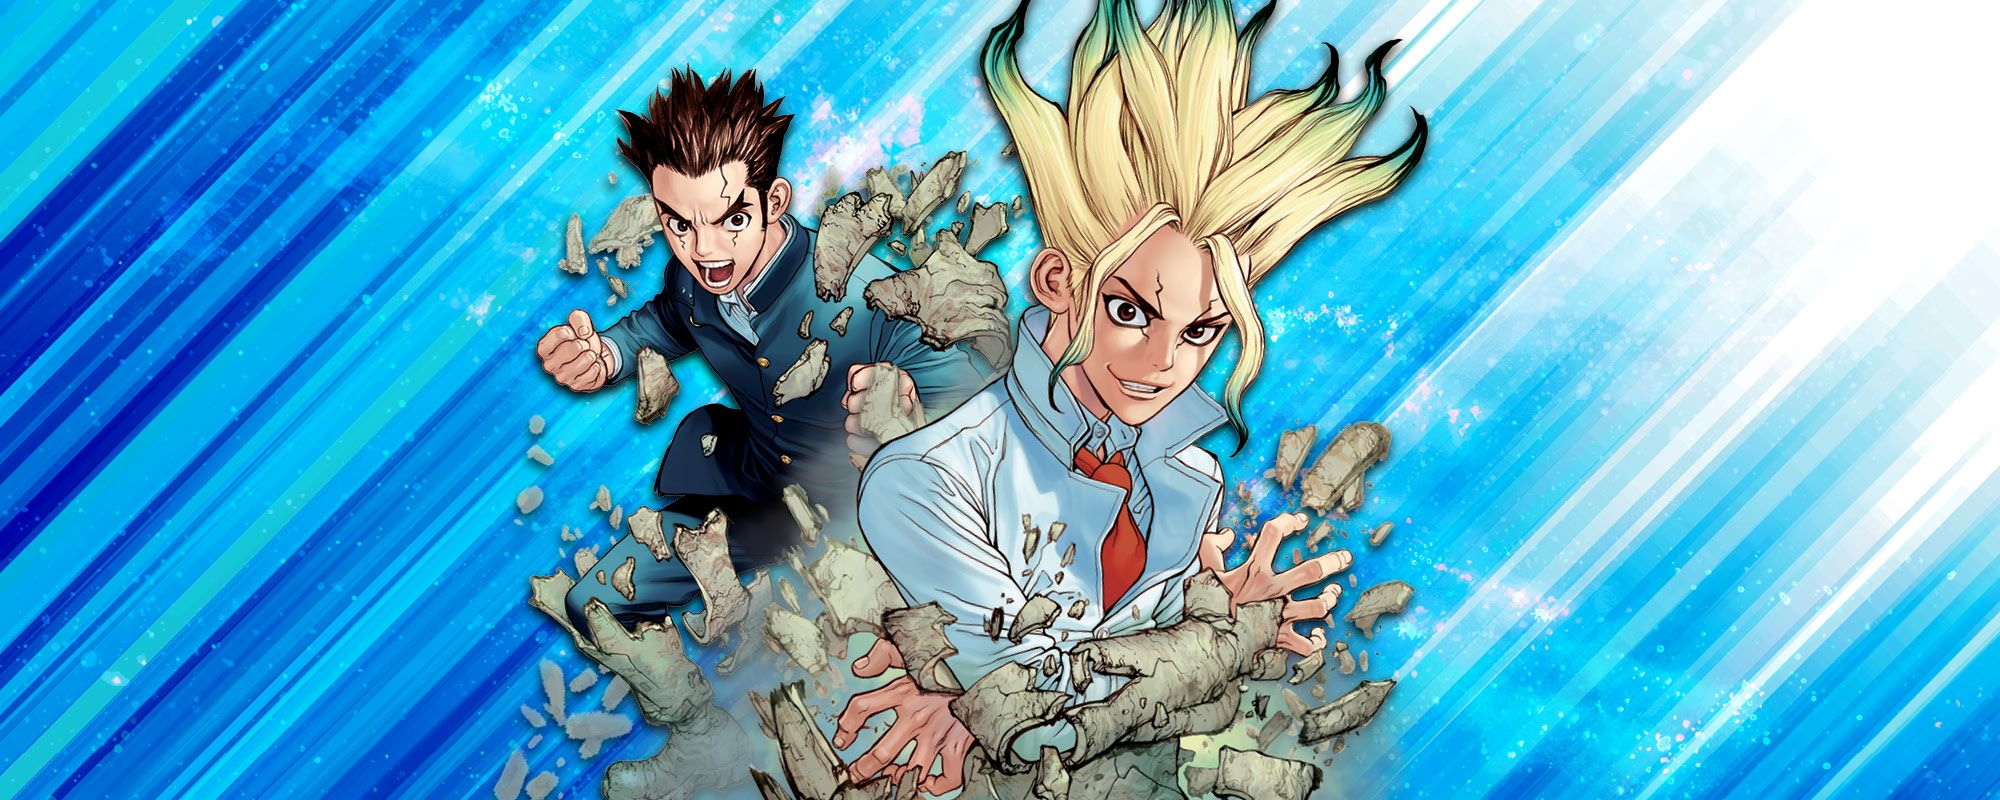 Dr Stone Computer Wallpapers - Wallpaper Cave